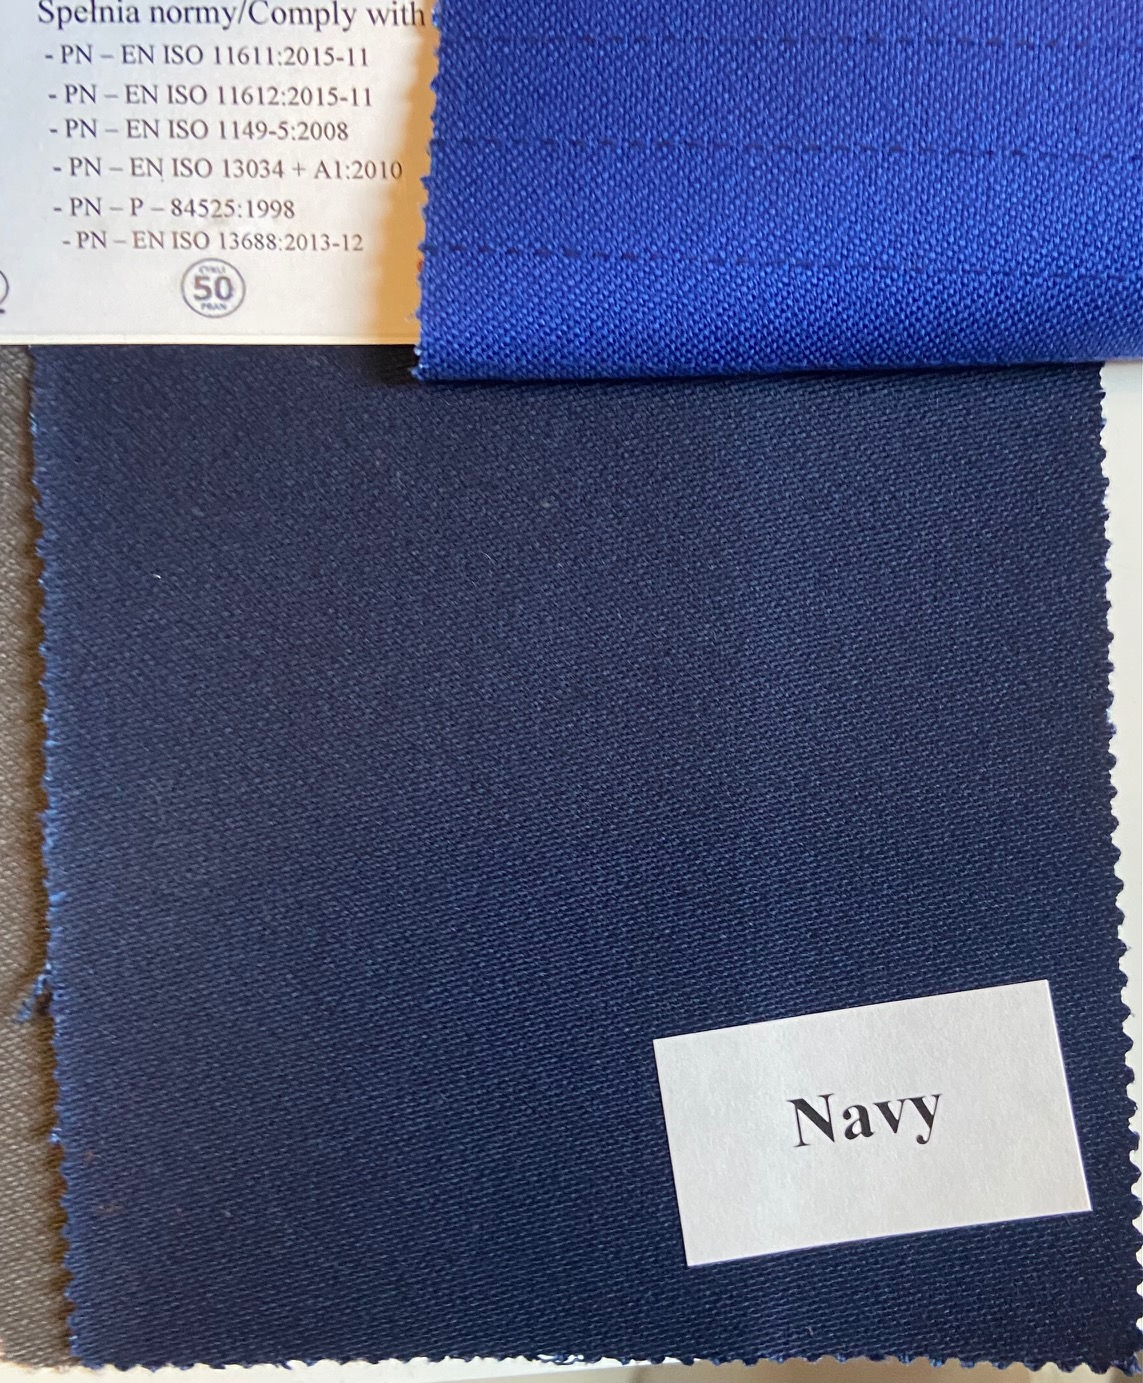 Flame retardant, Antistatic and Acid resistant Fabric. Weight 350g/m², width 150cm, Navy. Price per roll 50m, VAT incl.